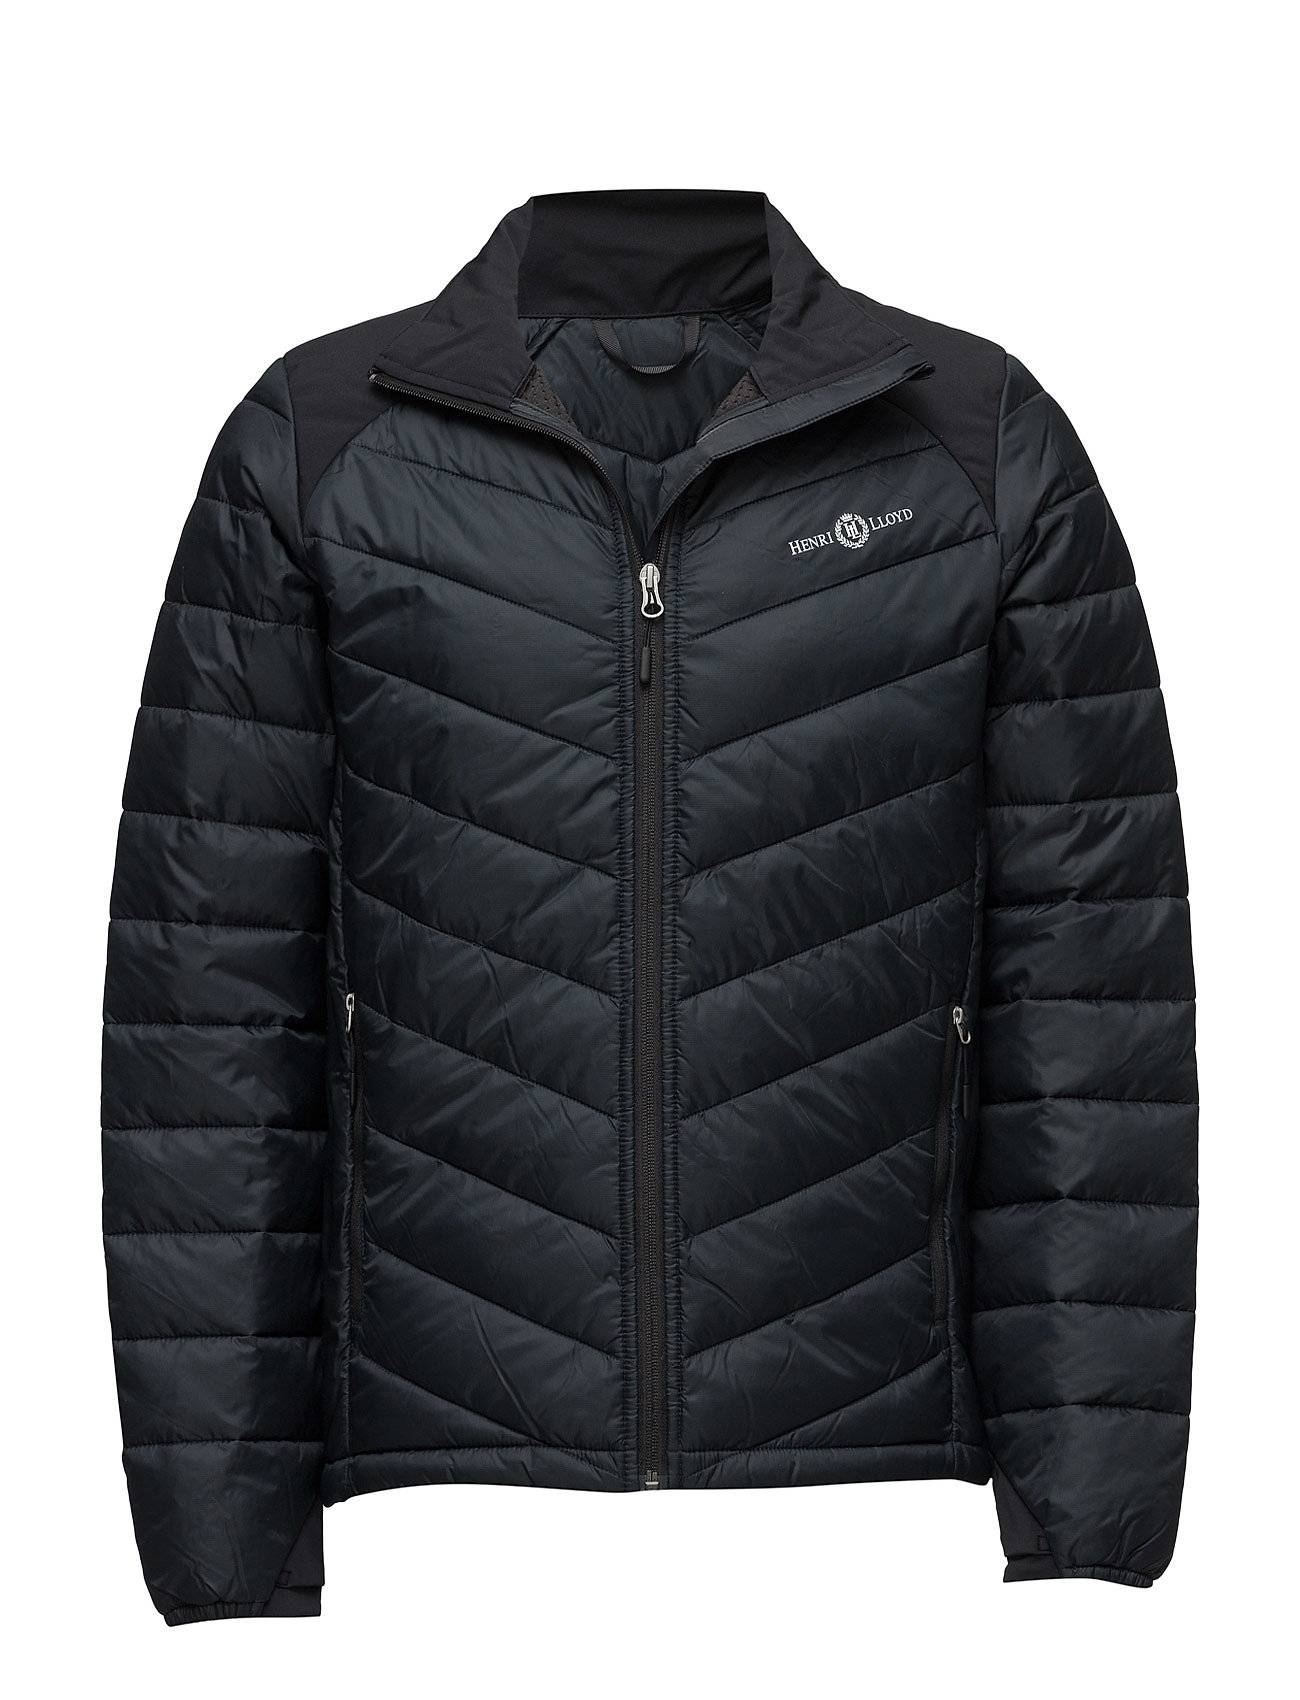 Henri Lloyd Aqua Down Jacket